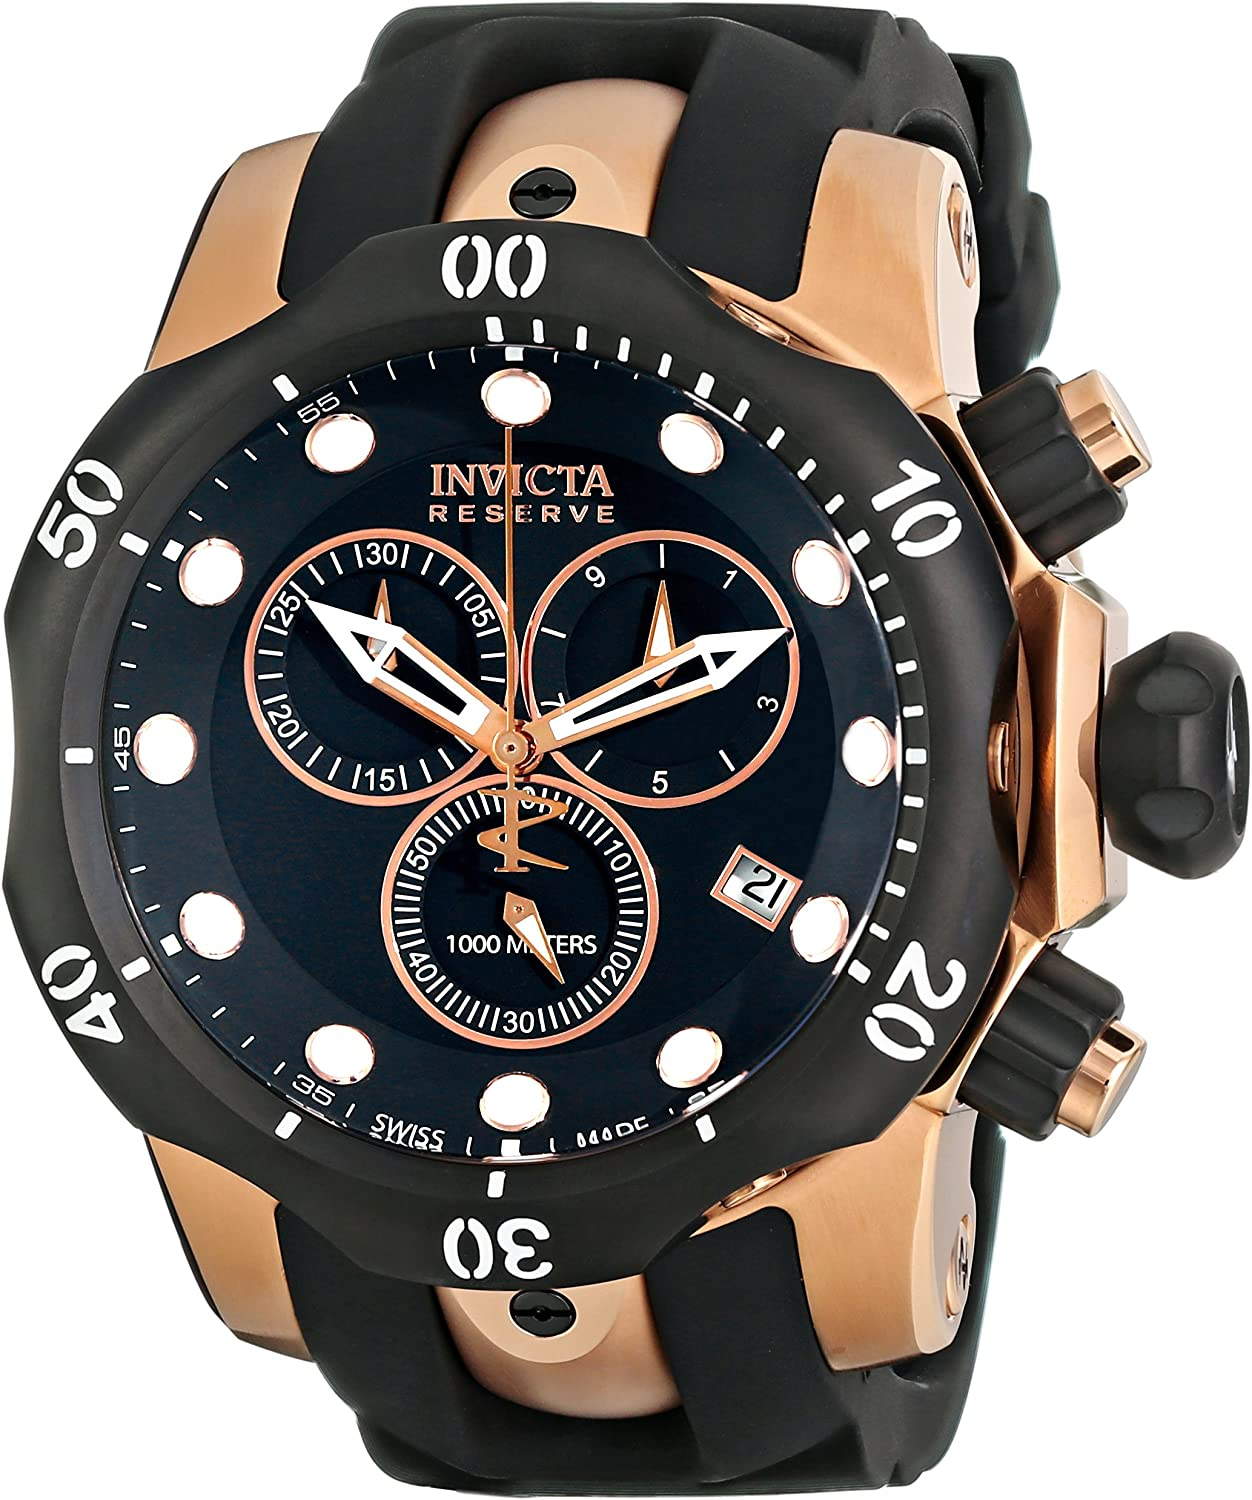 Invicta Men s 5733 Reserve Collection Rose Gold-Tone Chronograph Watch